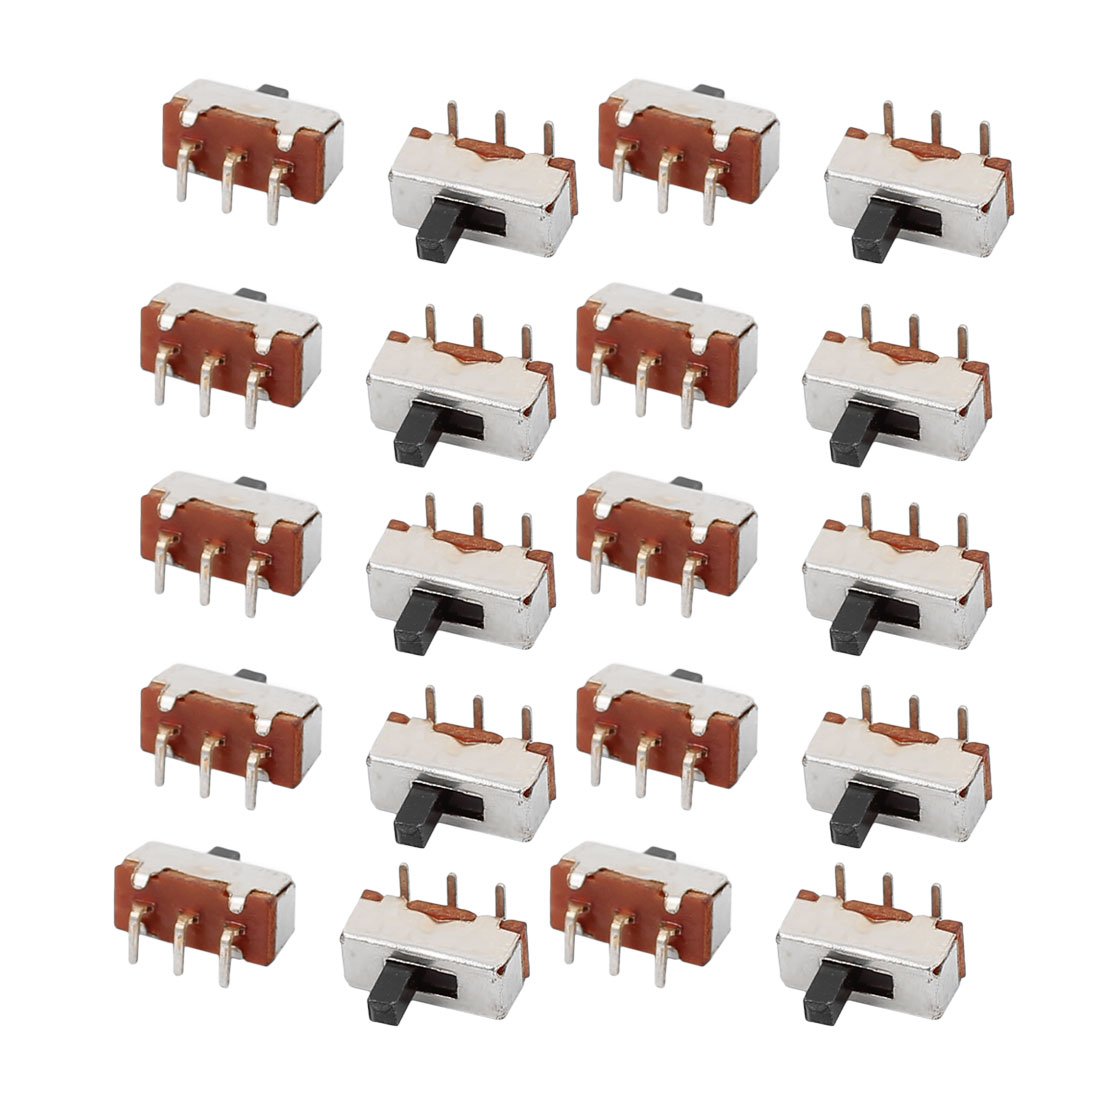 20 Pcs DC50V 0.5A 2 Position 3 P SPDT Micro Slide Switch Latching Toy Switch